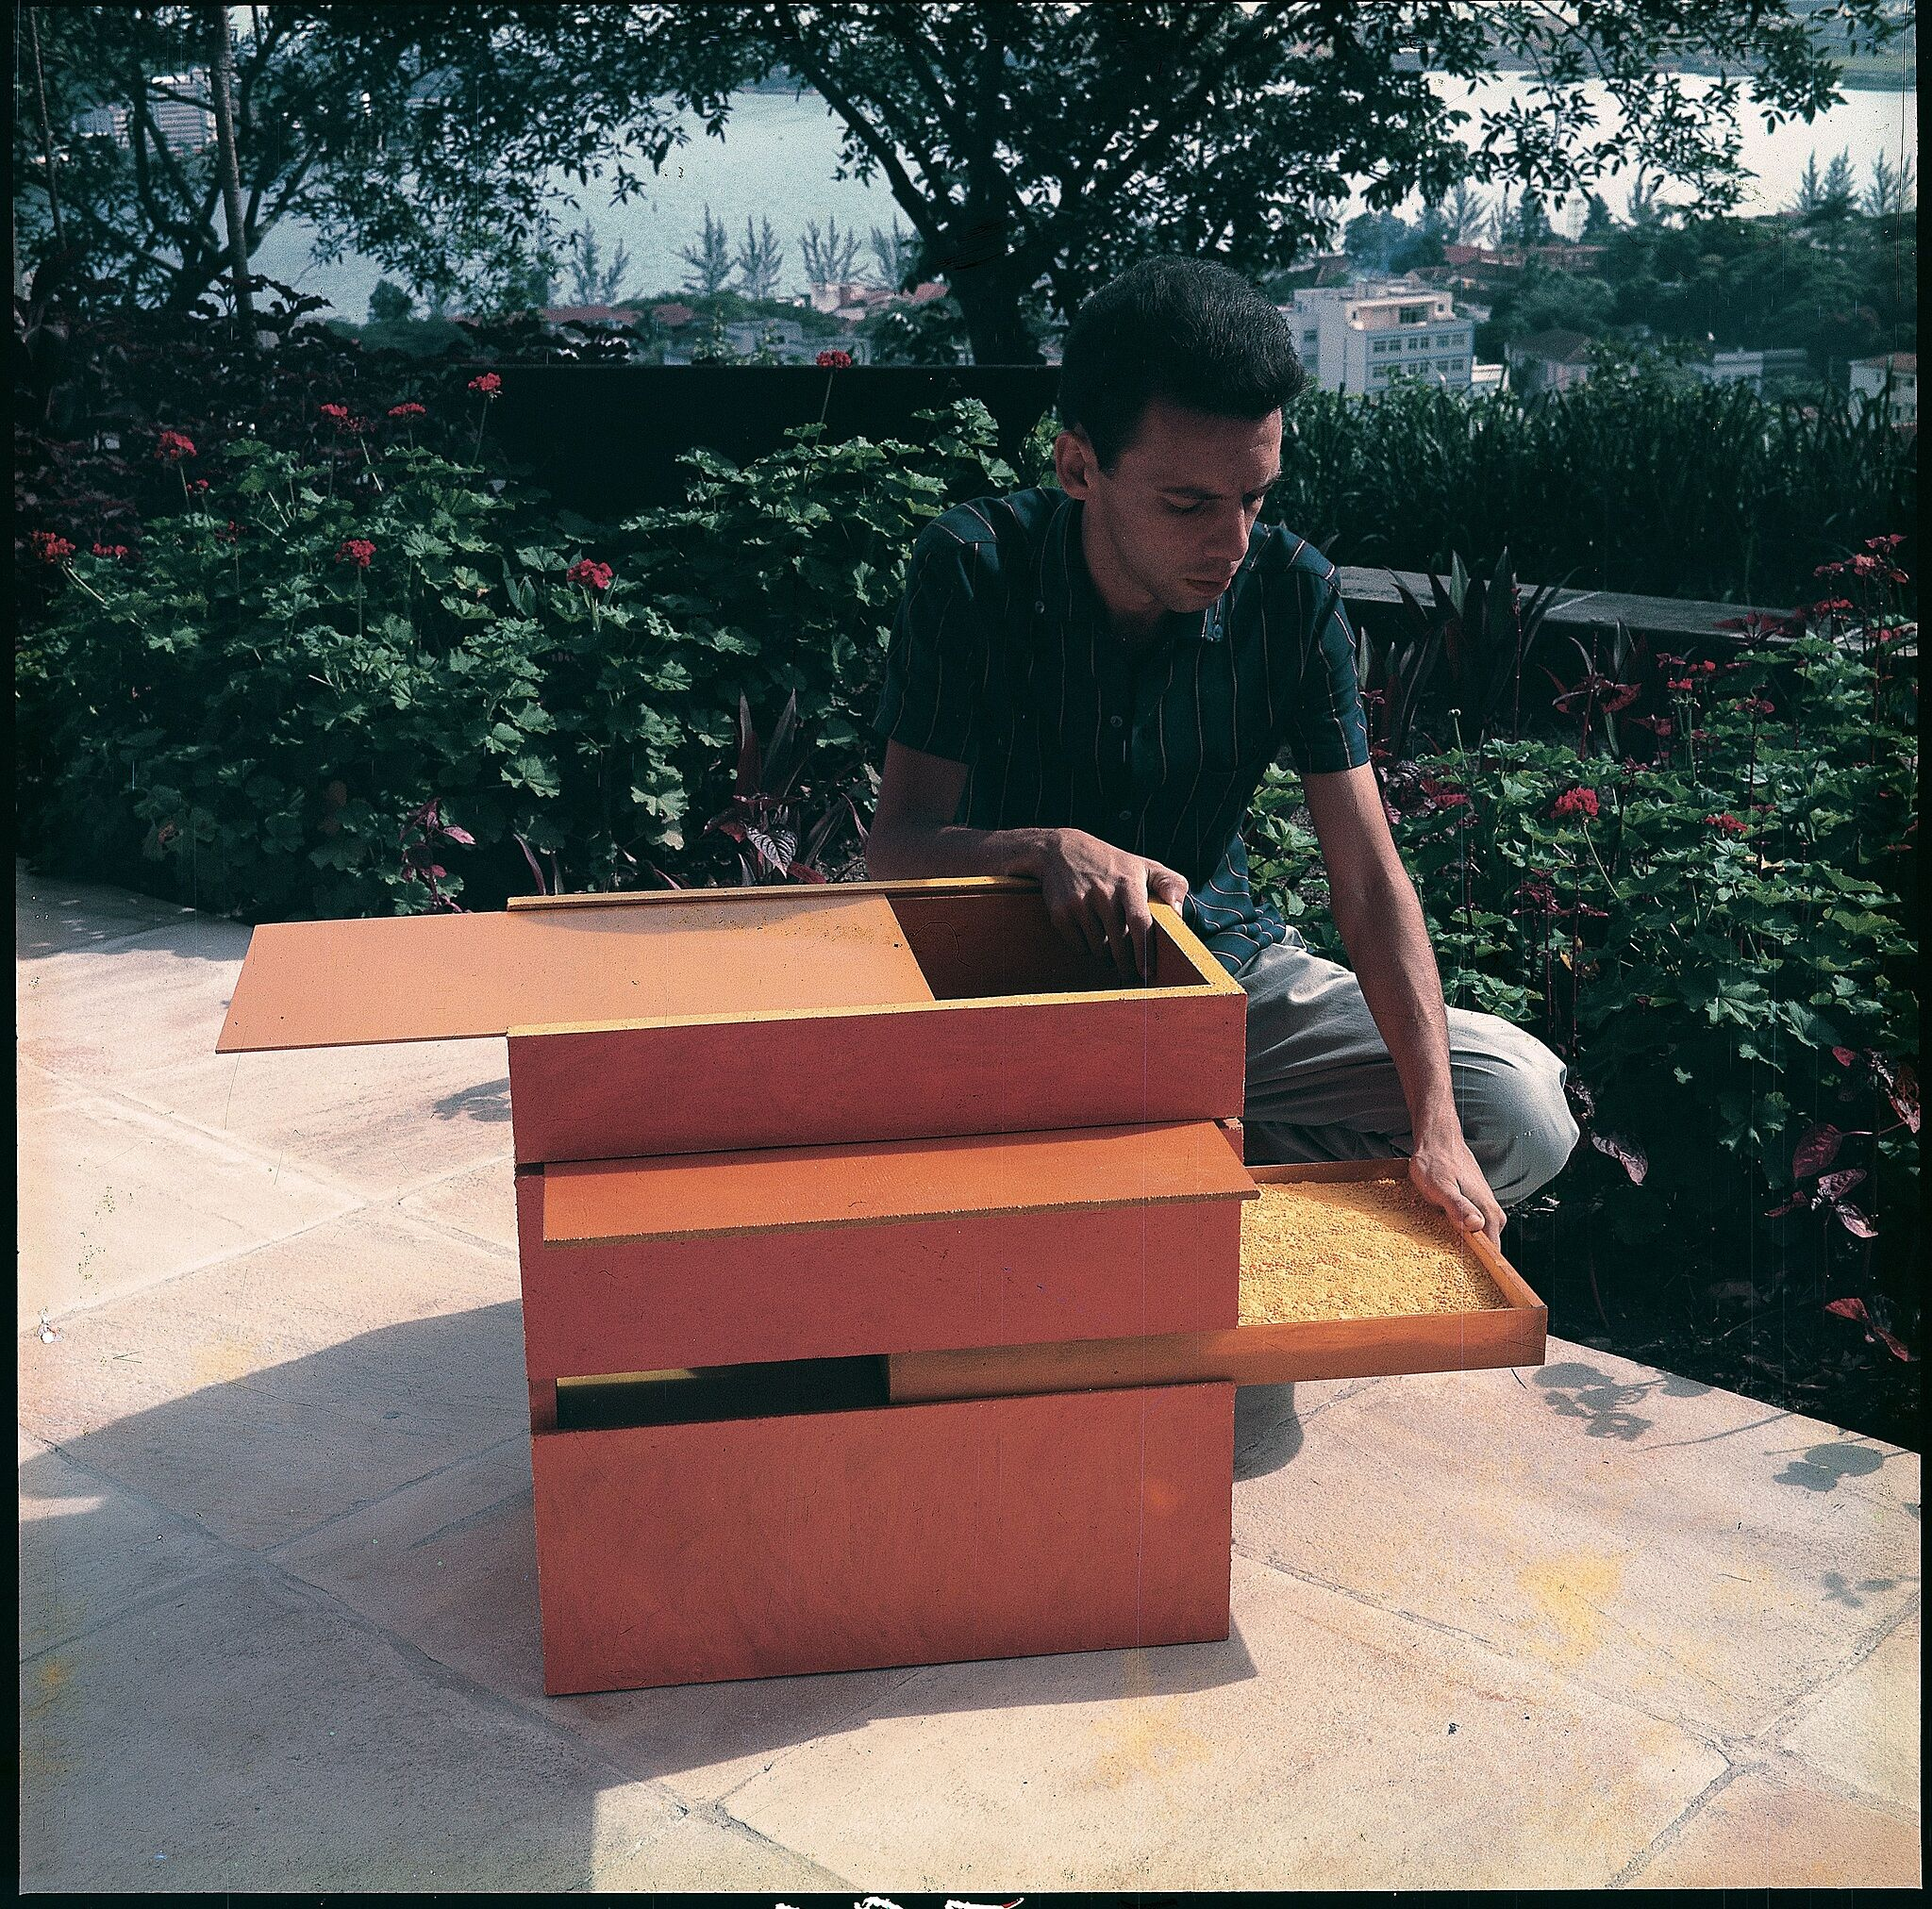 Man interacting with wooden box with multiple openings.